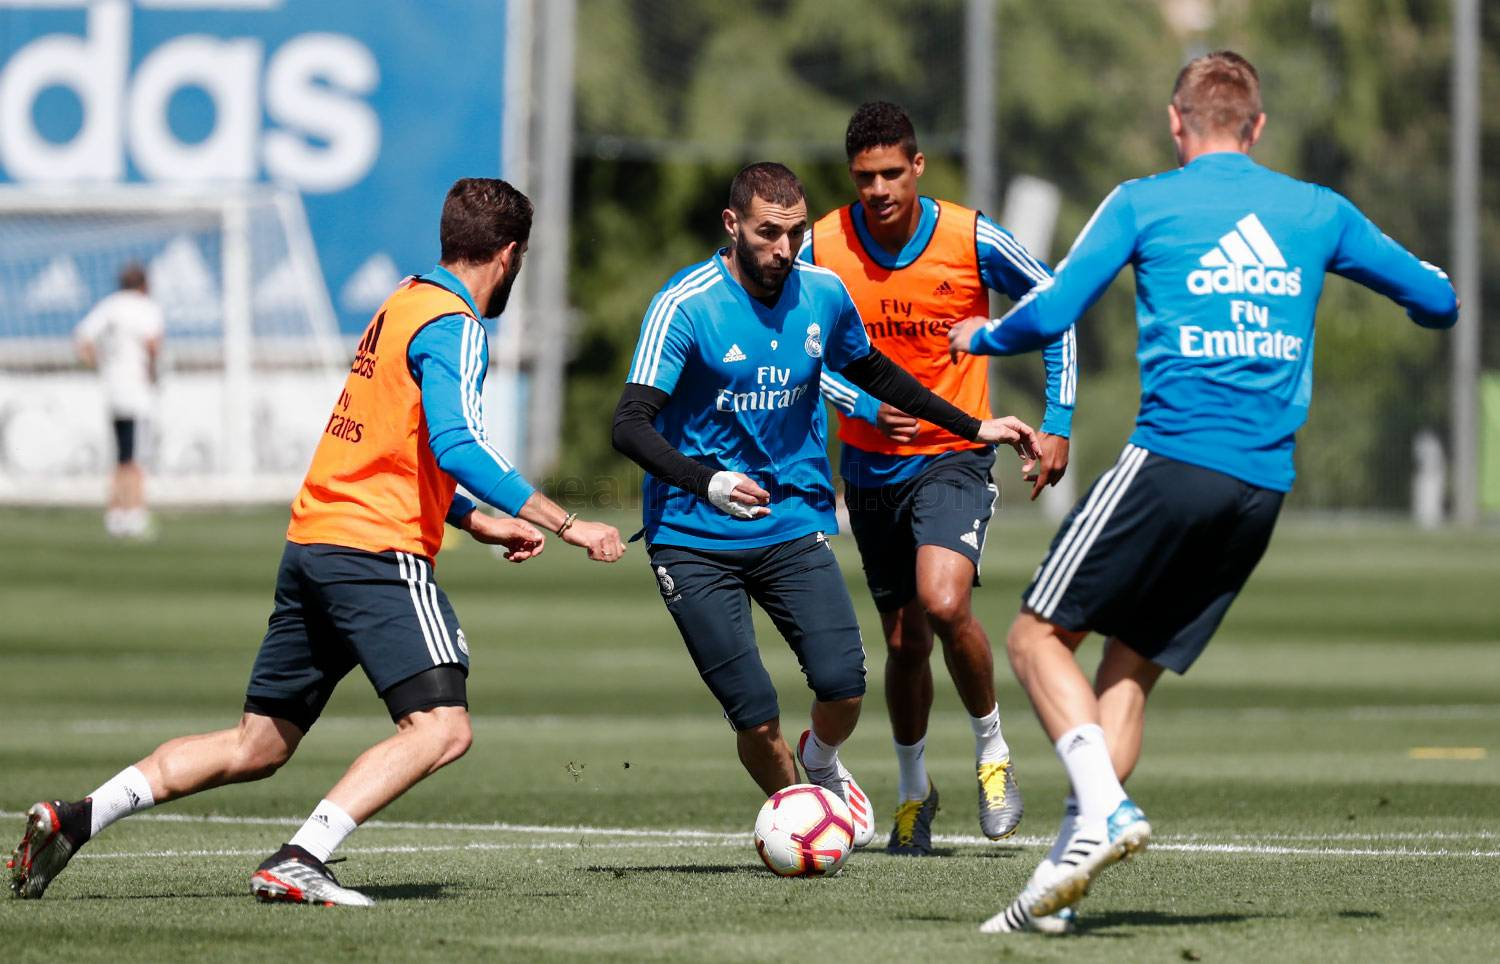 Real Madrid - Entrenamiento del Real Madrid - 09-05-2019